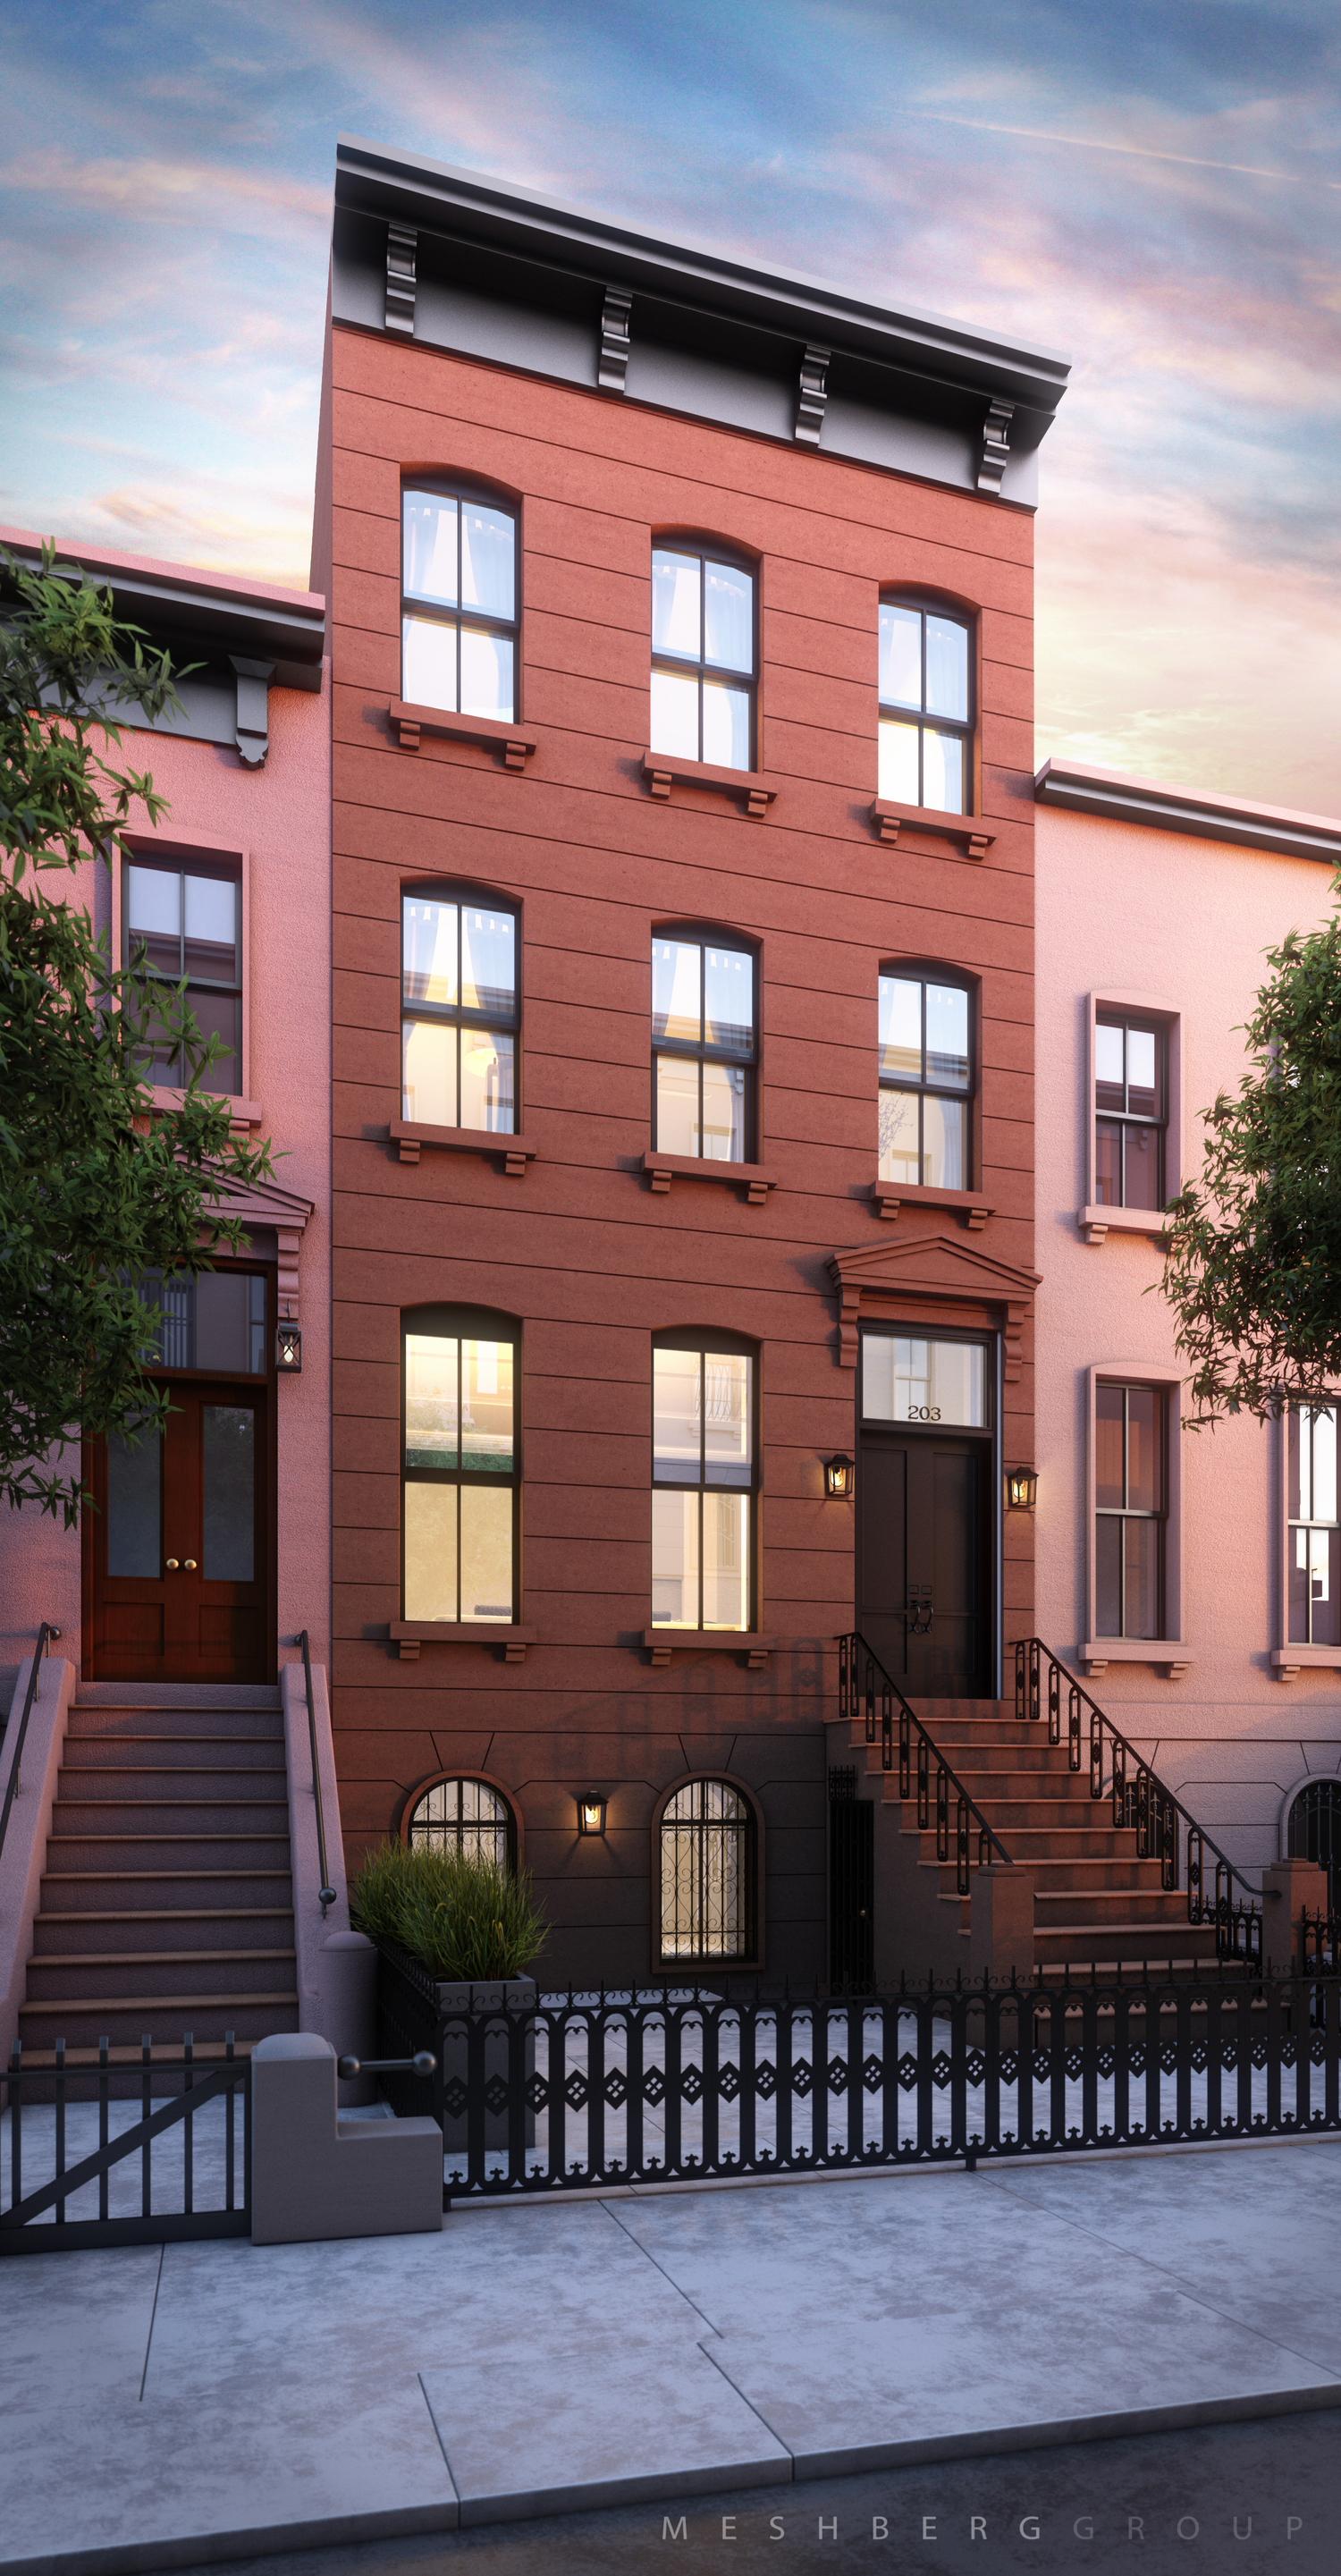 203 Bergen Street facade, rendering by Meshberg Group